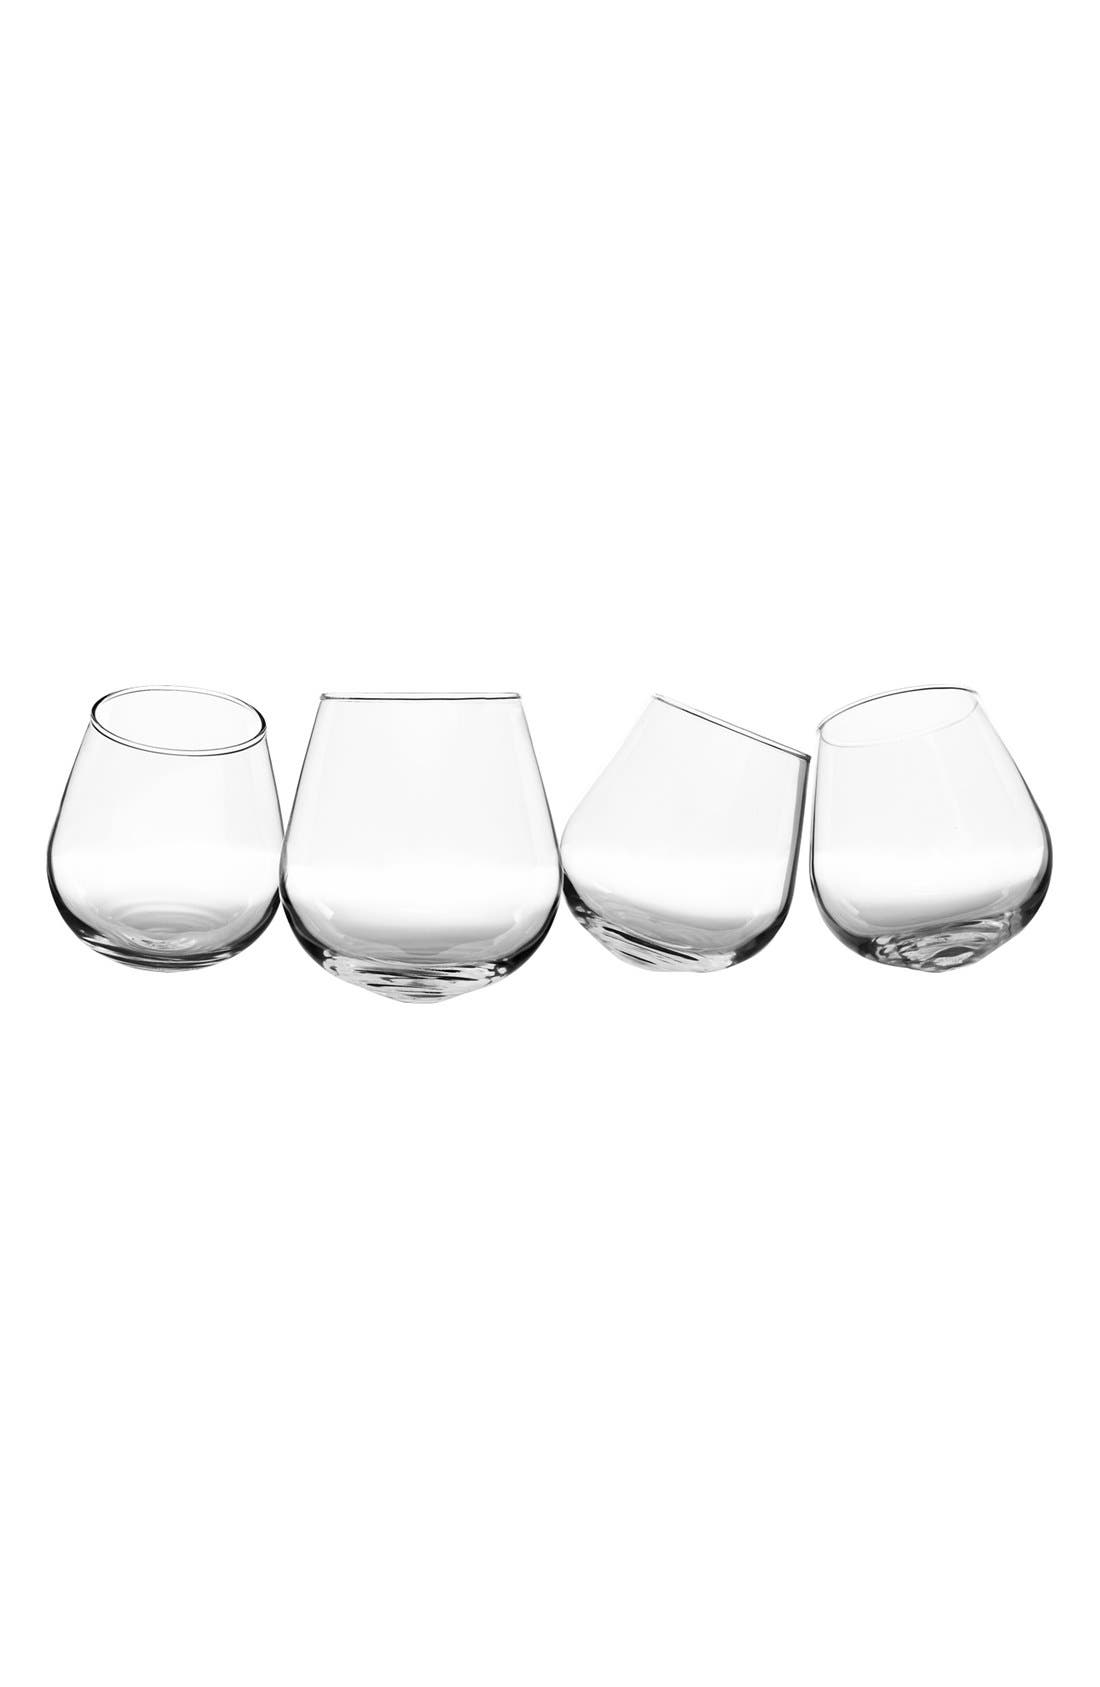 CATHY'S CONCEPTS Monogram Tipsy Set of 4 Wine Glasses, Main, color, CLEAR